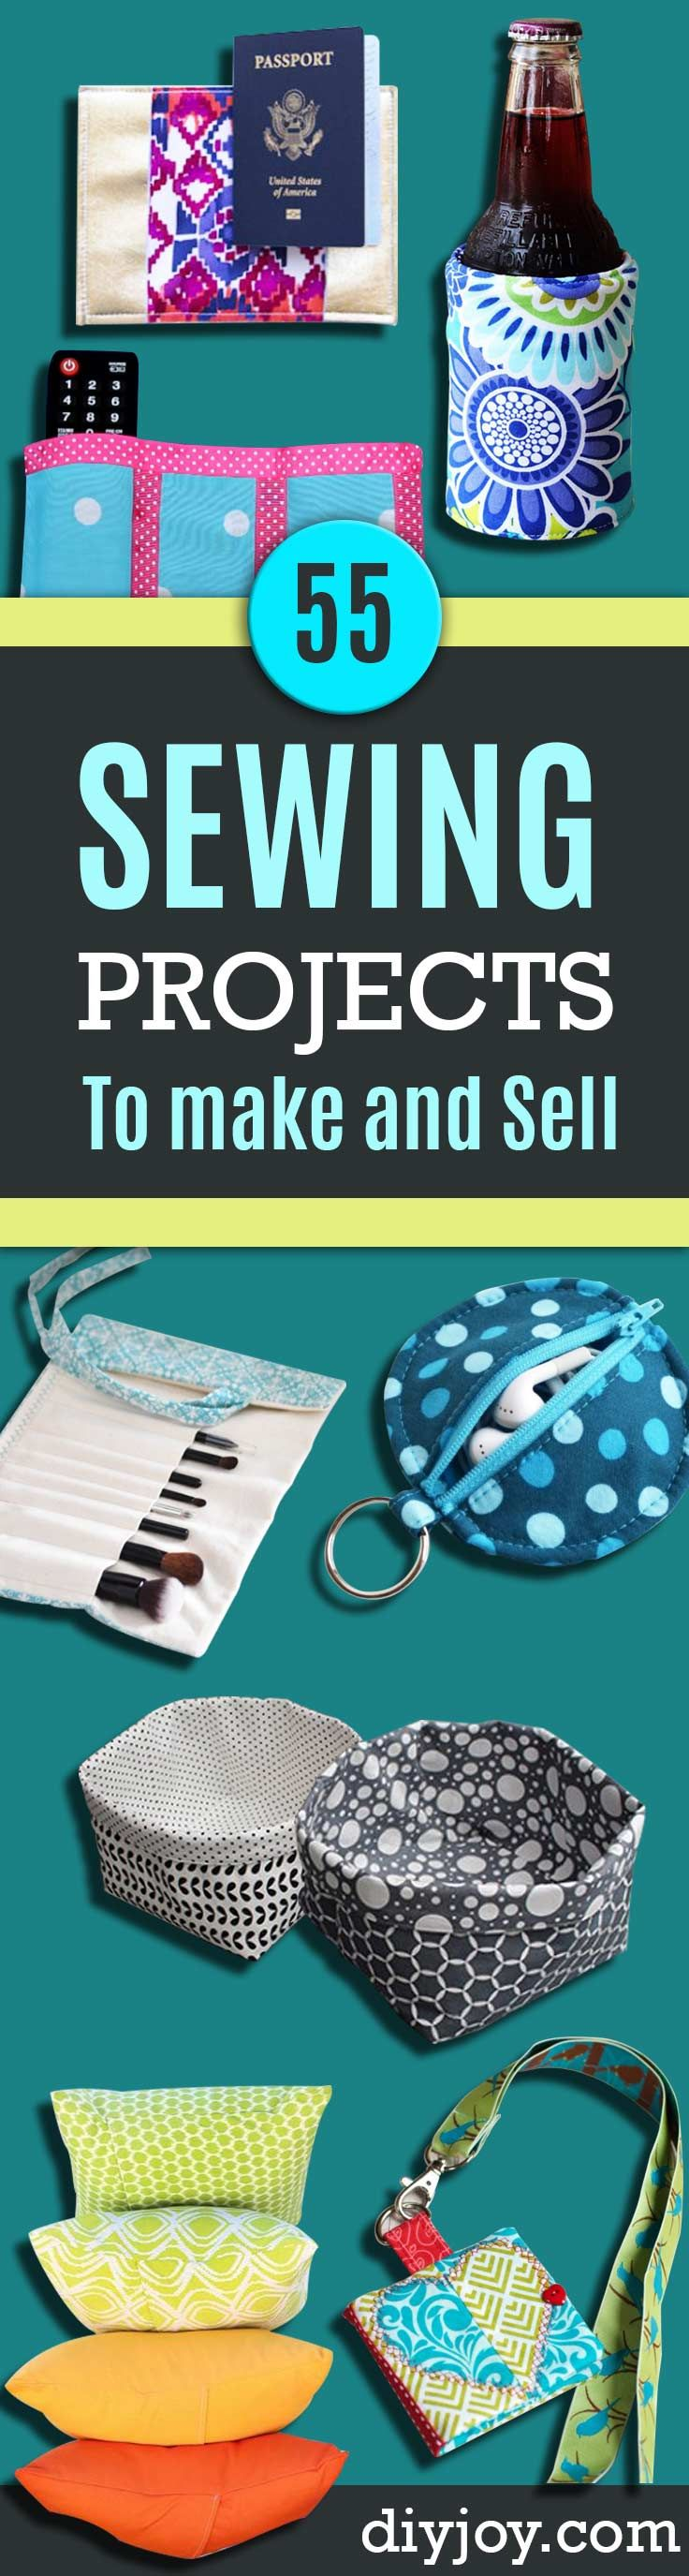 55 sewing projects to make and sell craft business for Items to make and sell from home